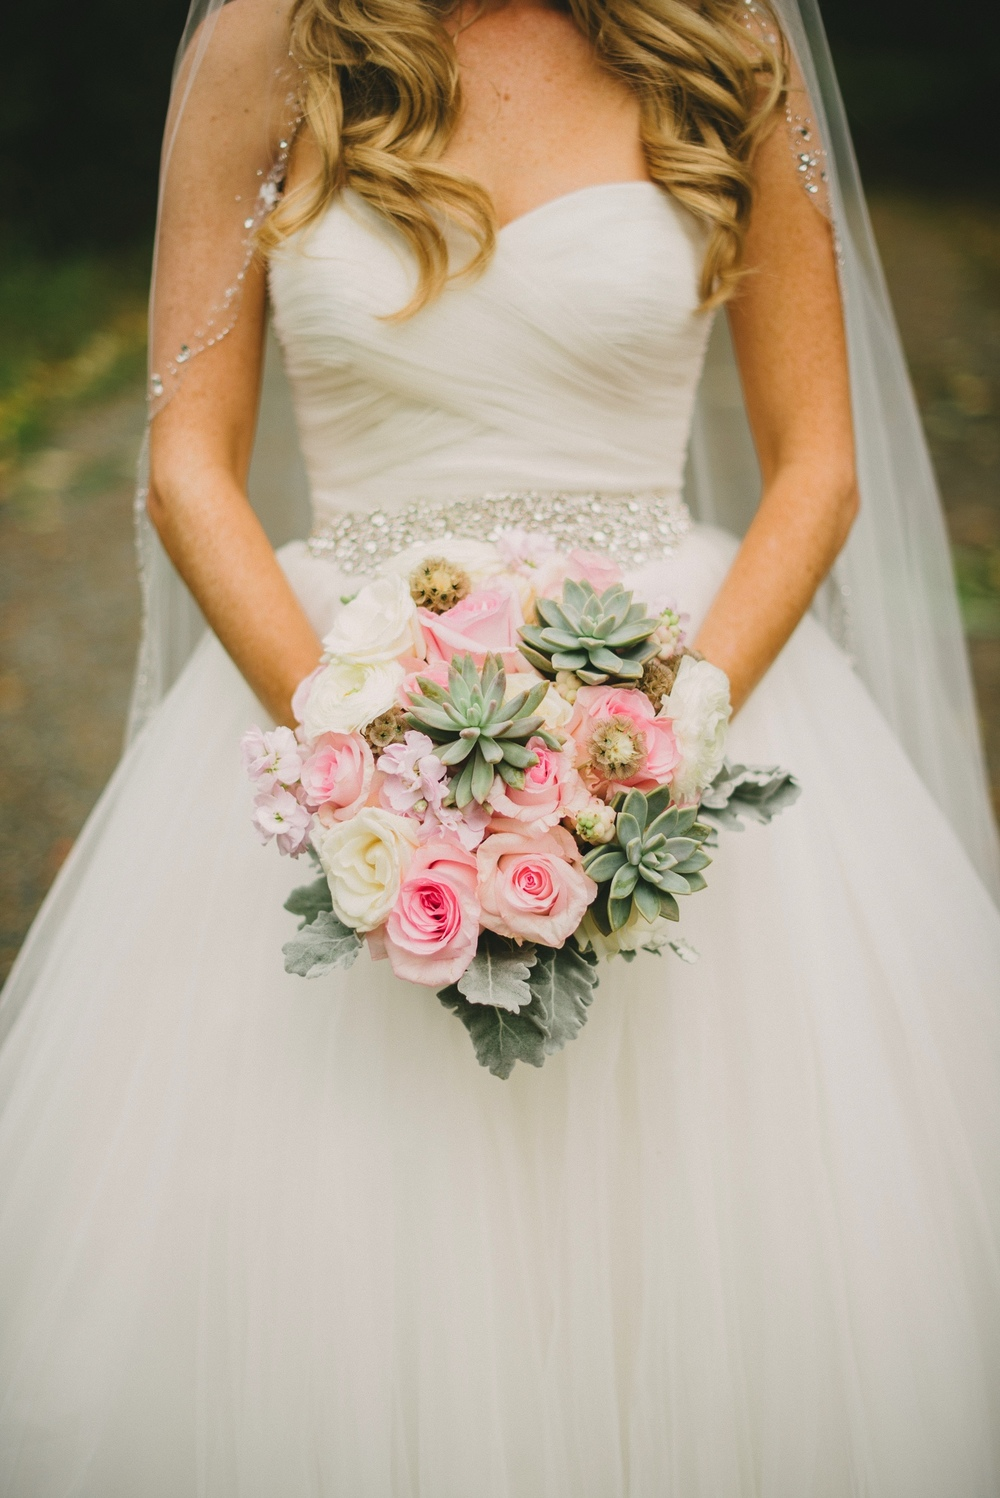 Fraser Valley Rustic wedding style by Floral Design by Lili, Vancouver Florist, B.C. Image by Sara Rogers Photography